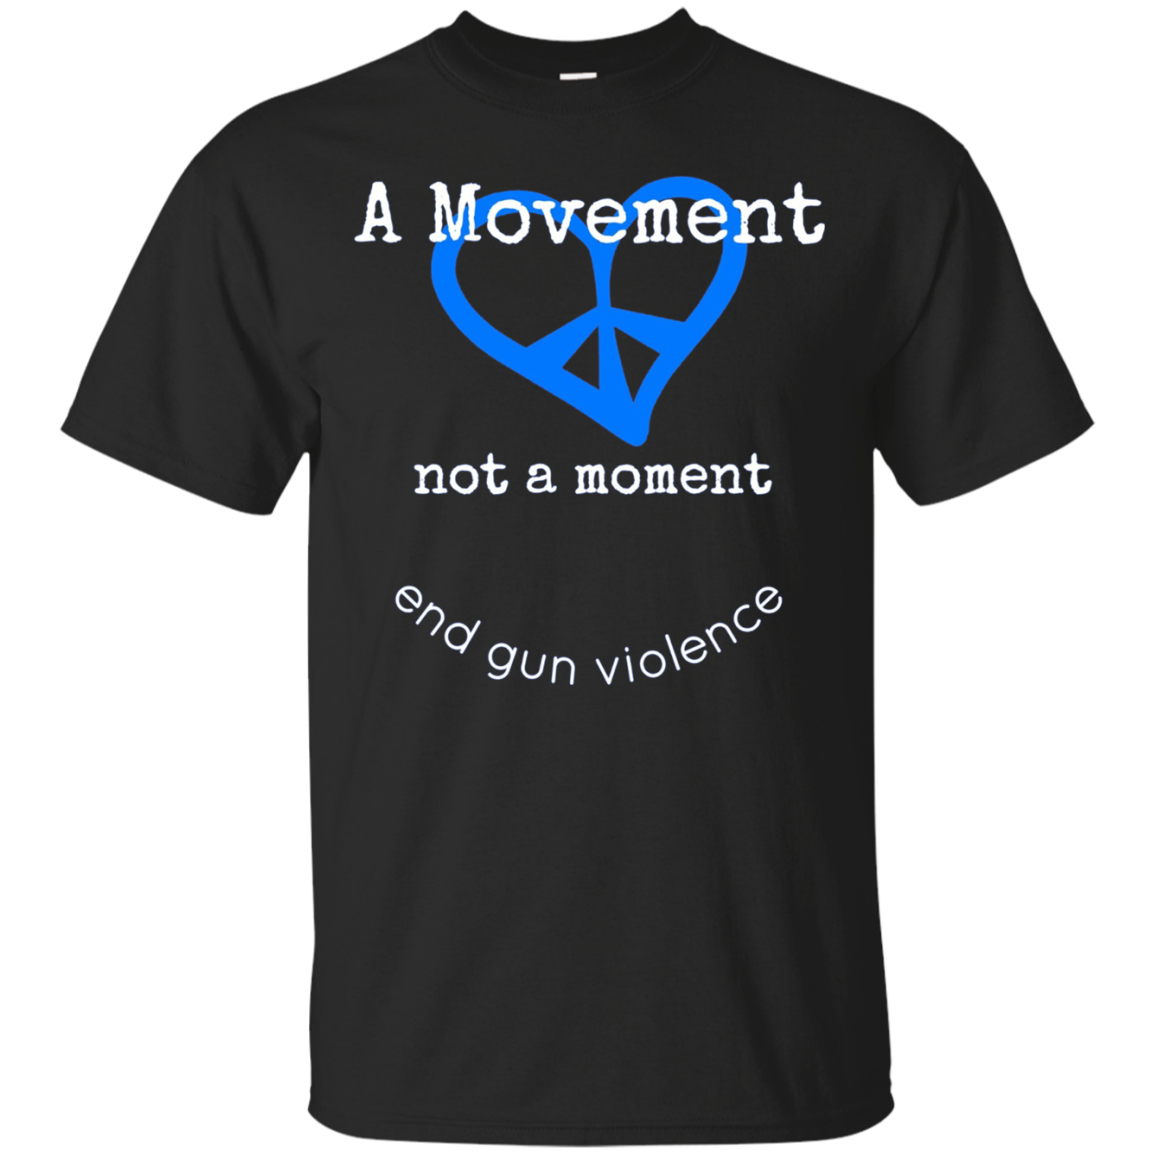 Never Again Long Sleeve Shirt - A Movement not a Moment